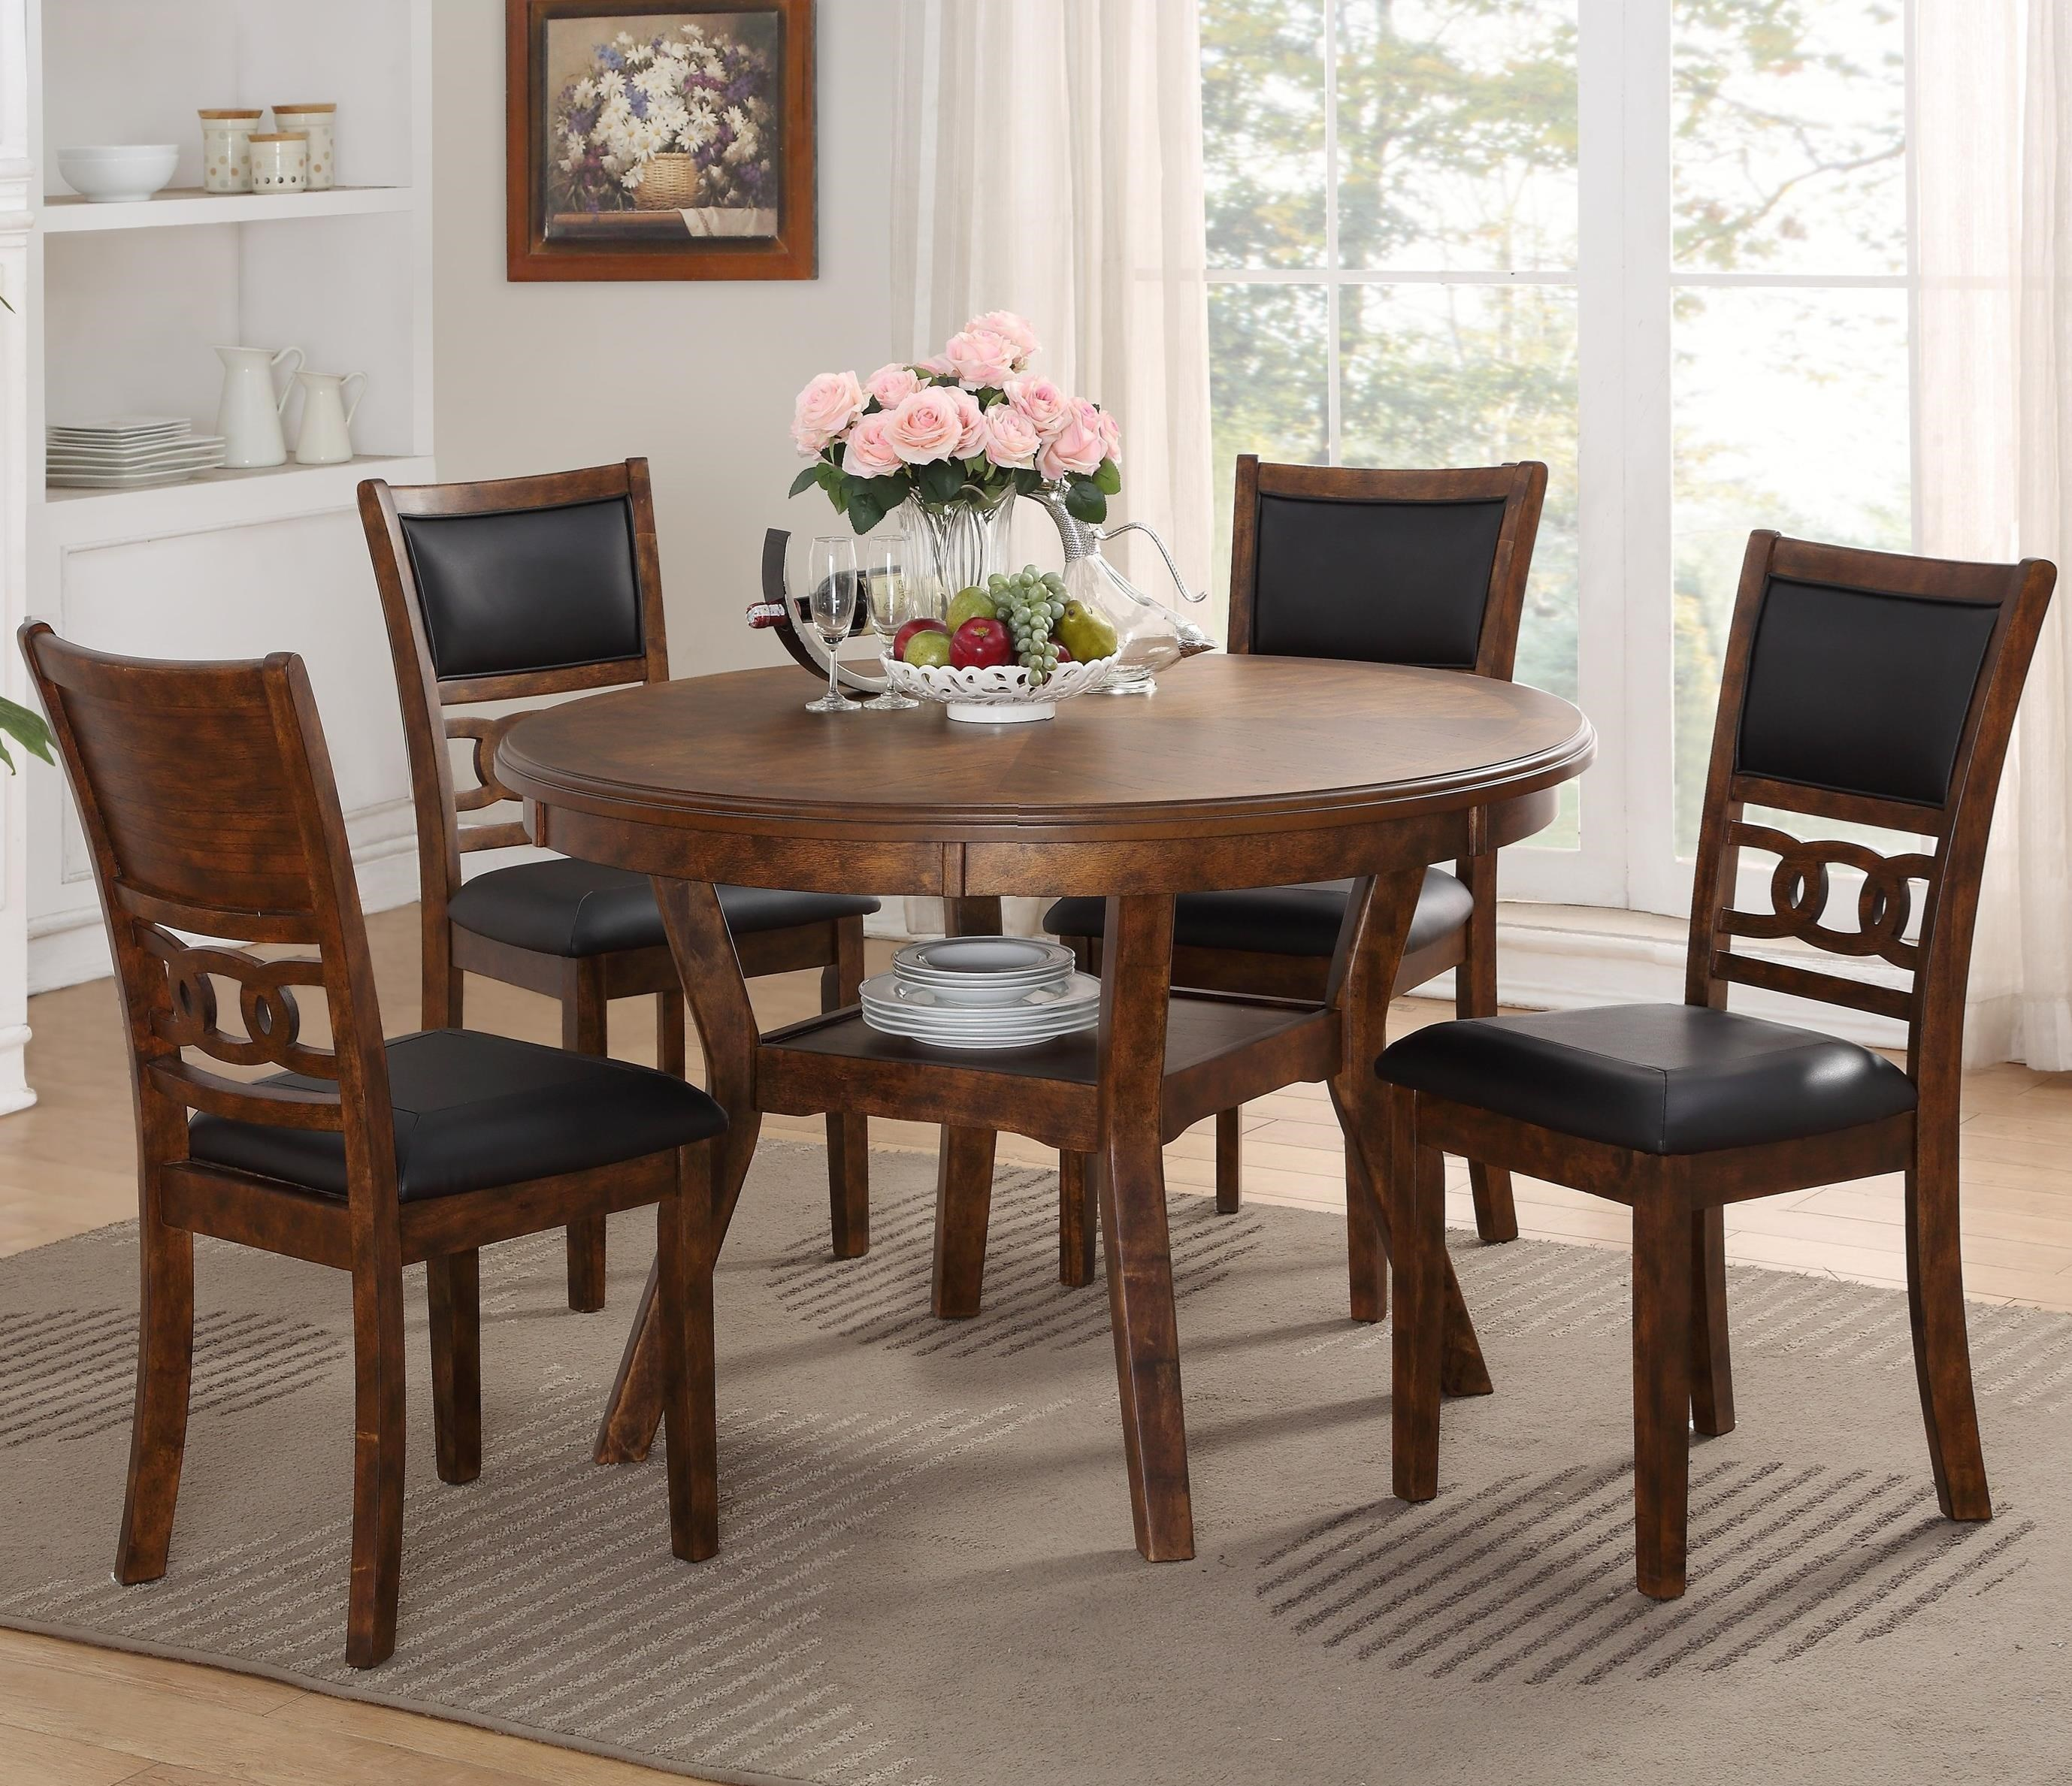 Gia Dining Table and Chair Set with 4 Chairs and Circle Motif by New  Classic at Great American Home Store